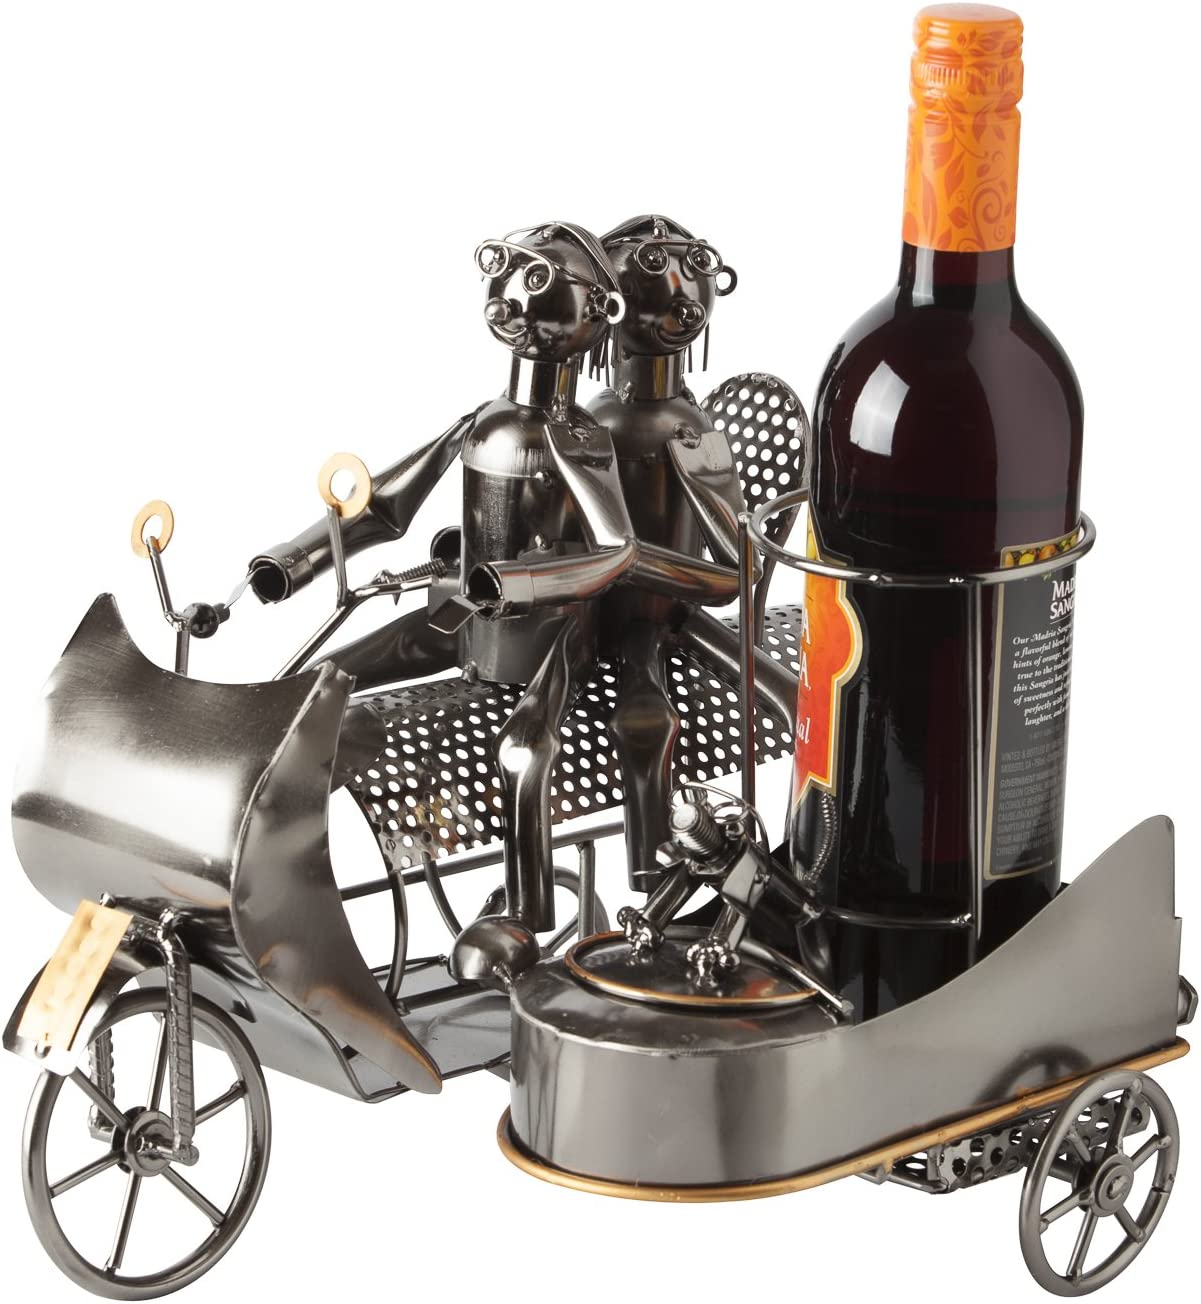 "BRUBAKER Wine Bottle Holder Statue""Couple on Motorbike with Dog in Sidecar"" Sculptures and Figurines Decor & Vintage Wine Racks and Stands Gifts Decoration"